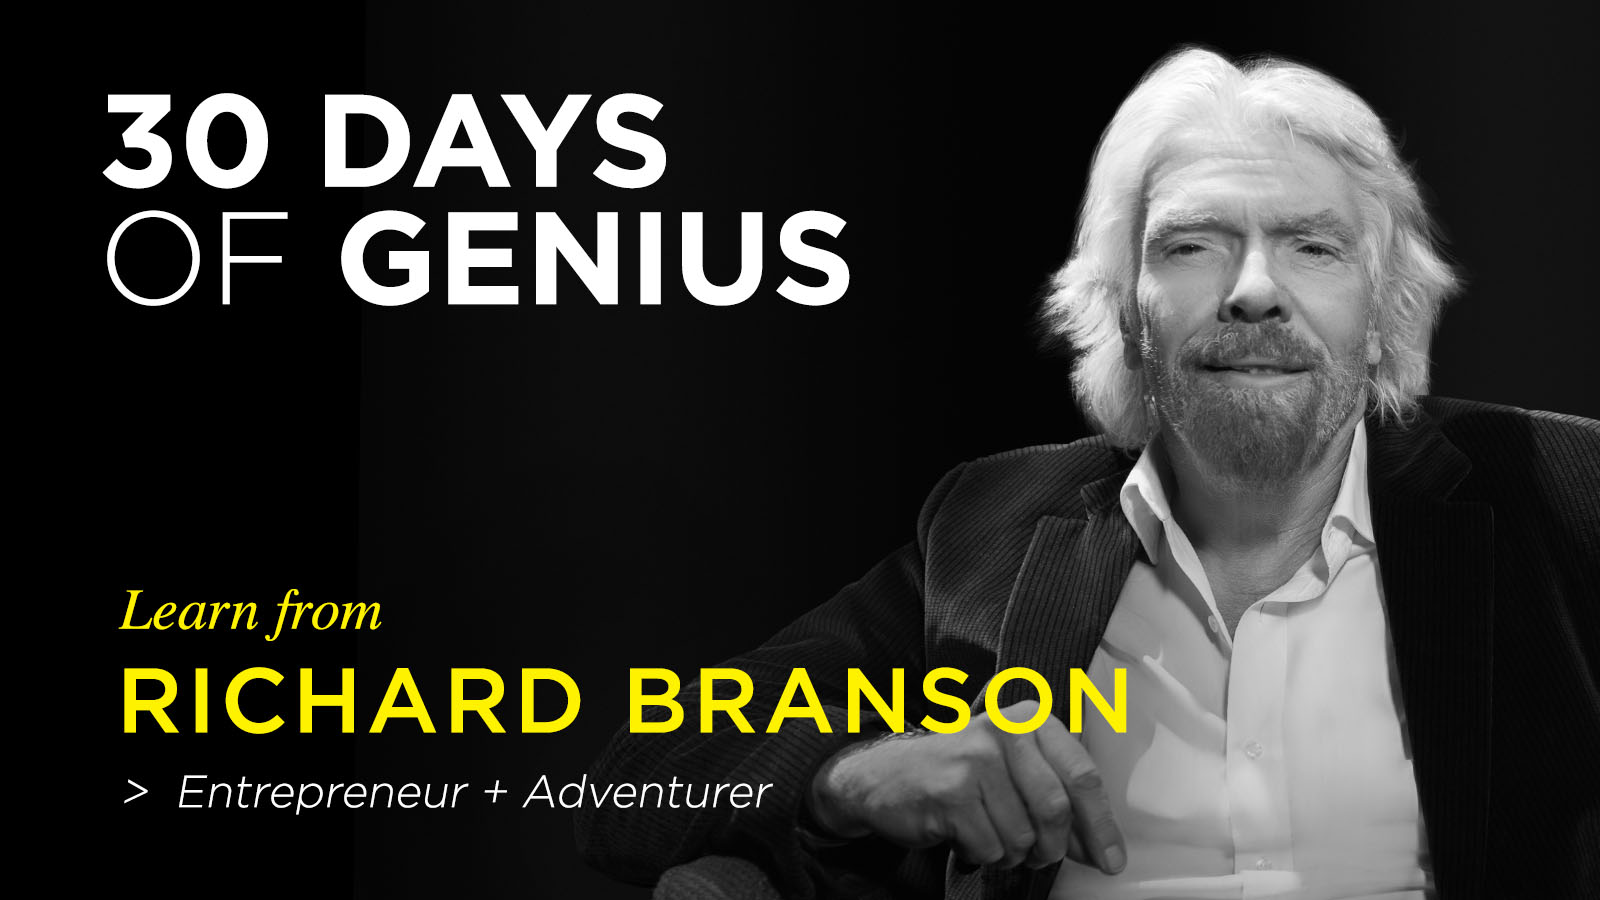 Richard Branson: Screw It Just Do It